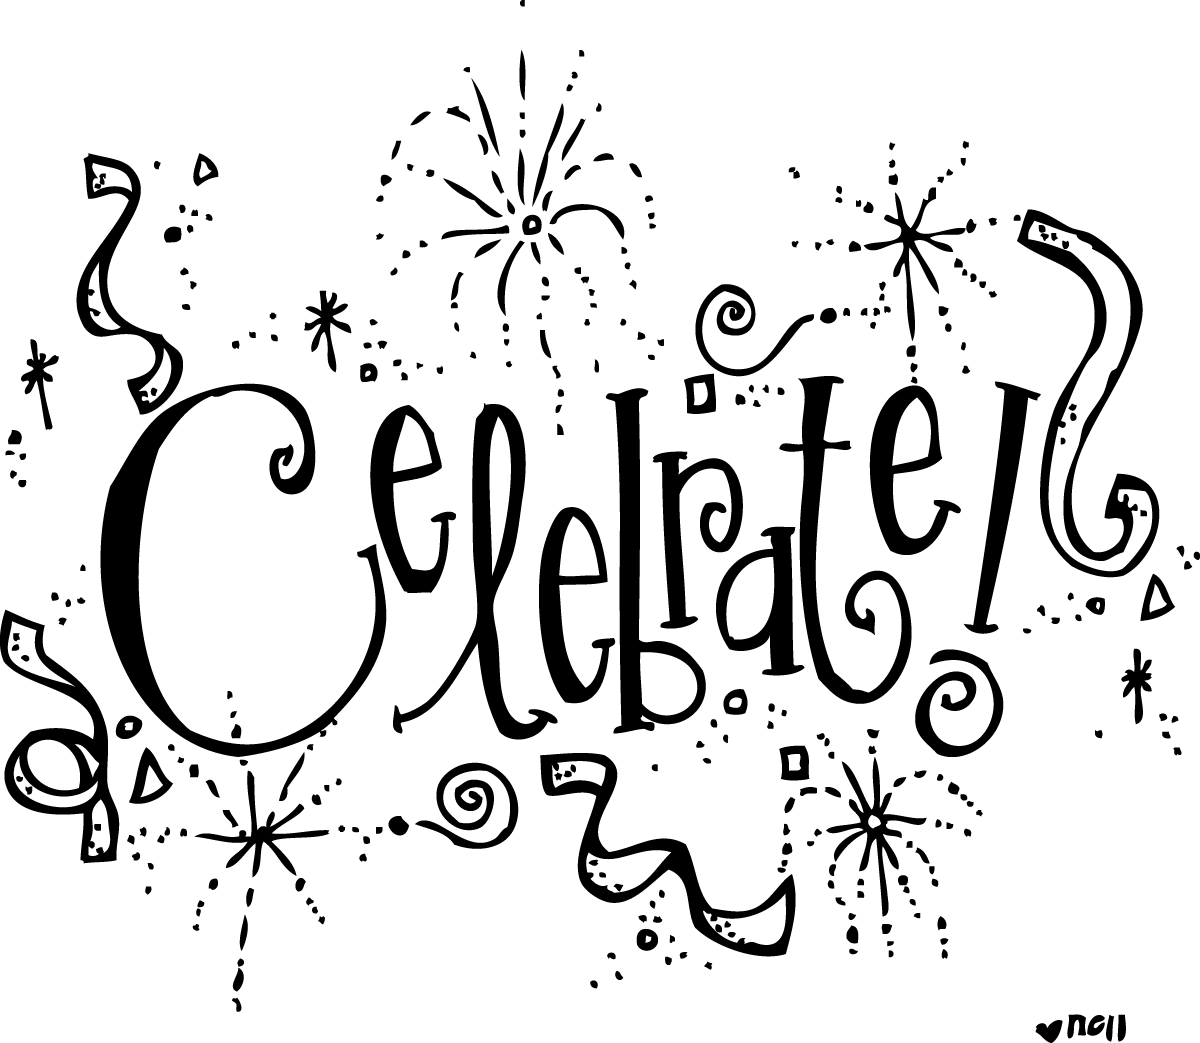 Animated Clipart Celebrations 20 Free Cliparts